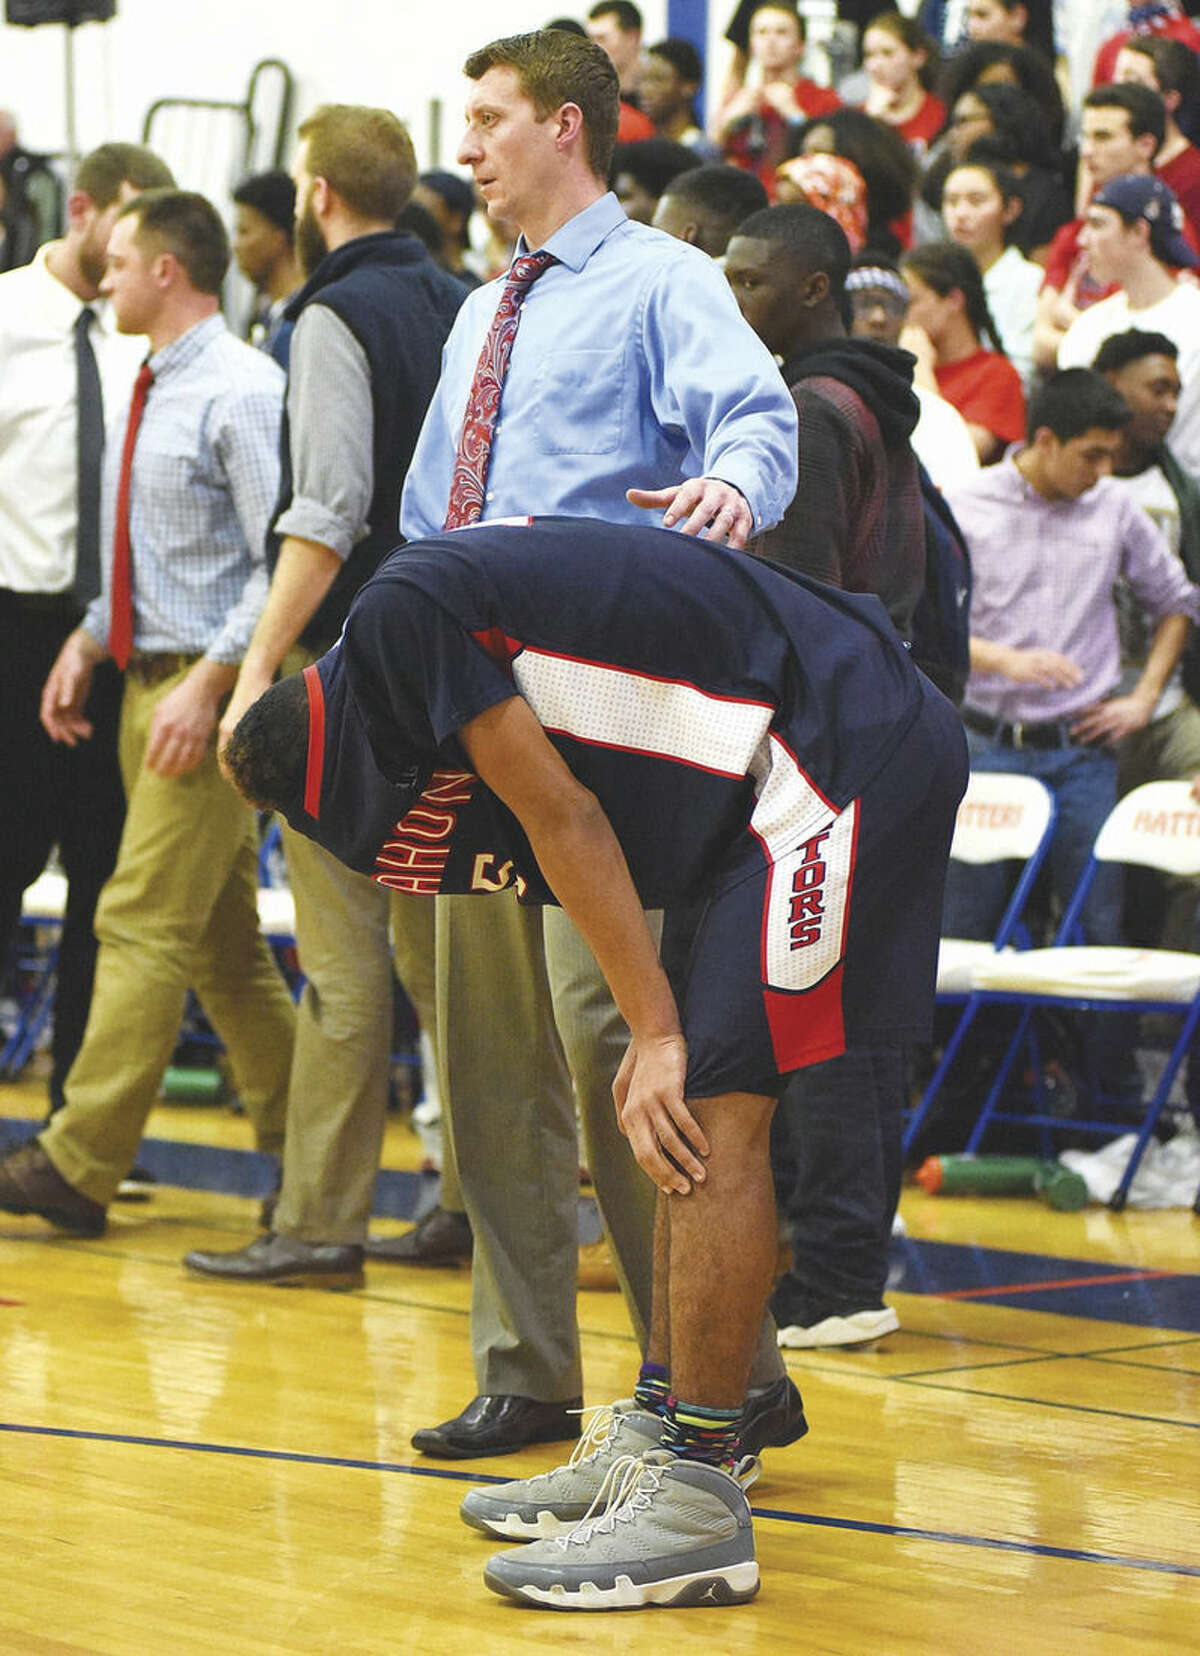 Hour photo/John Nash Brien McMahon's TJ Burden, front, is comforted by Senators head coach Ken Dustin after their team's 53-44 loss to Danbury on Thursday in CIAC Class LL boys basketball second round tournament game.